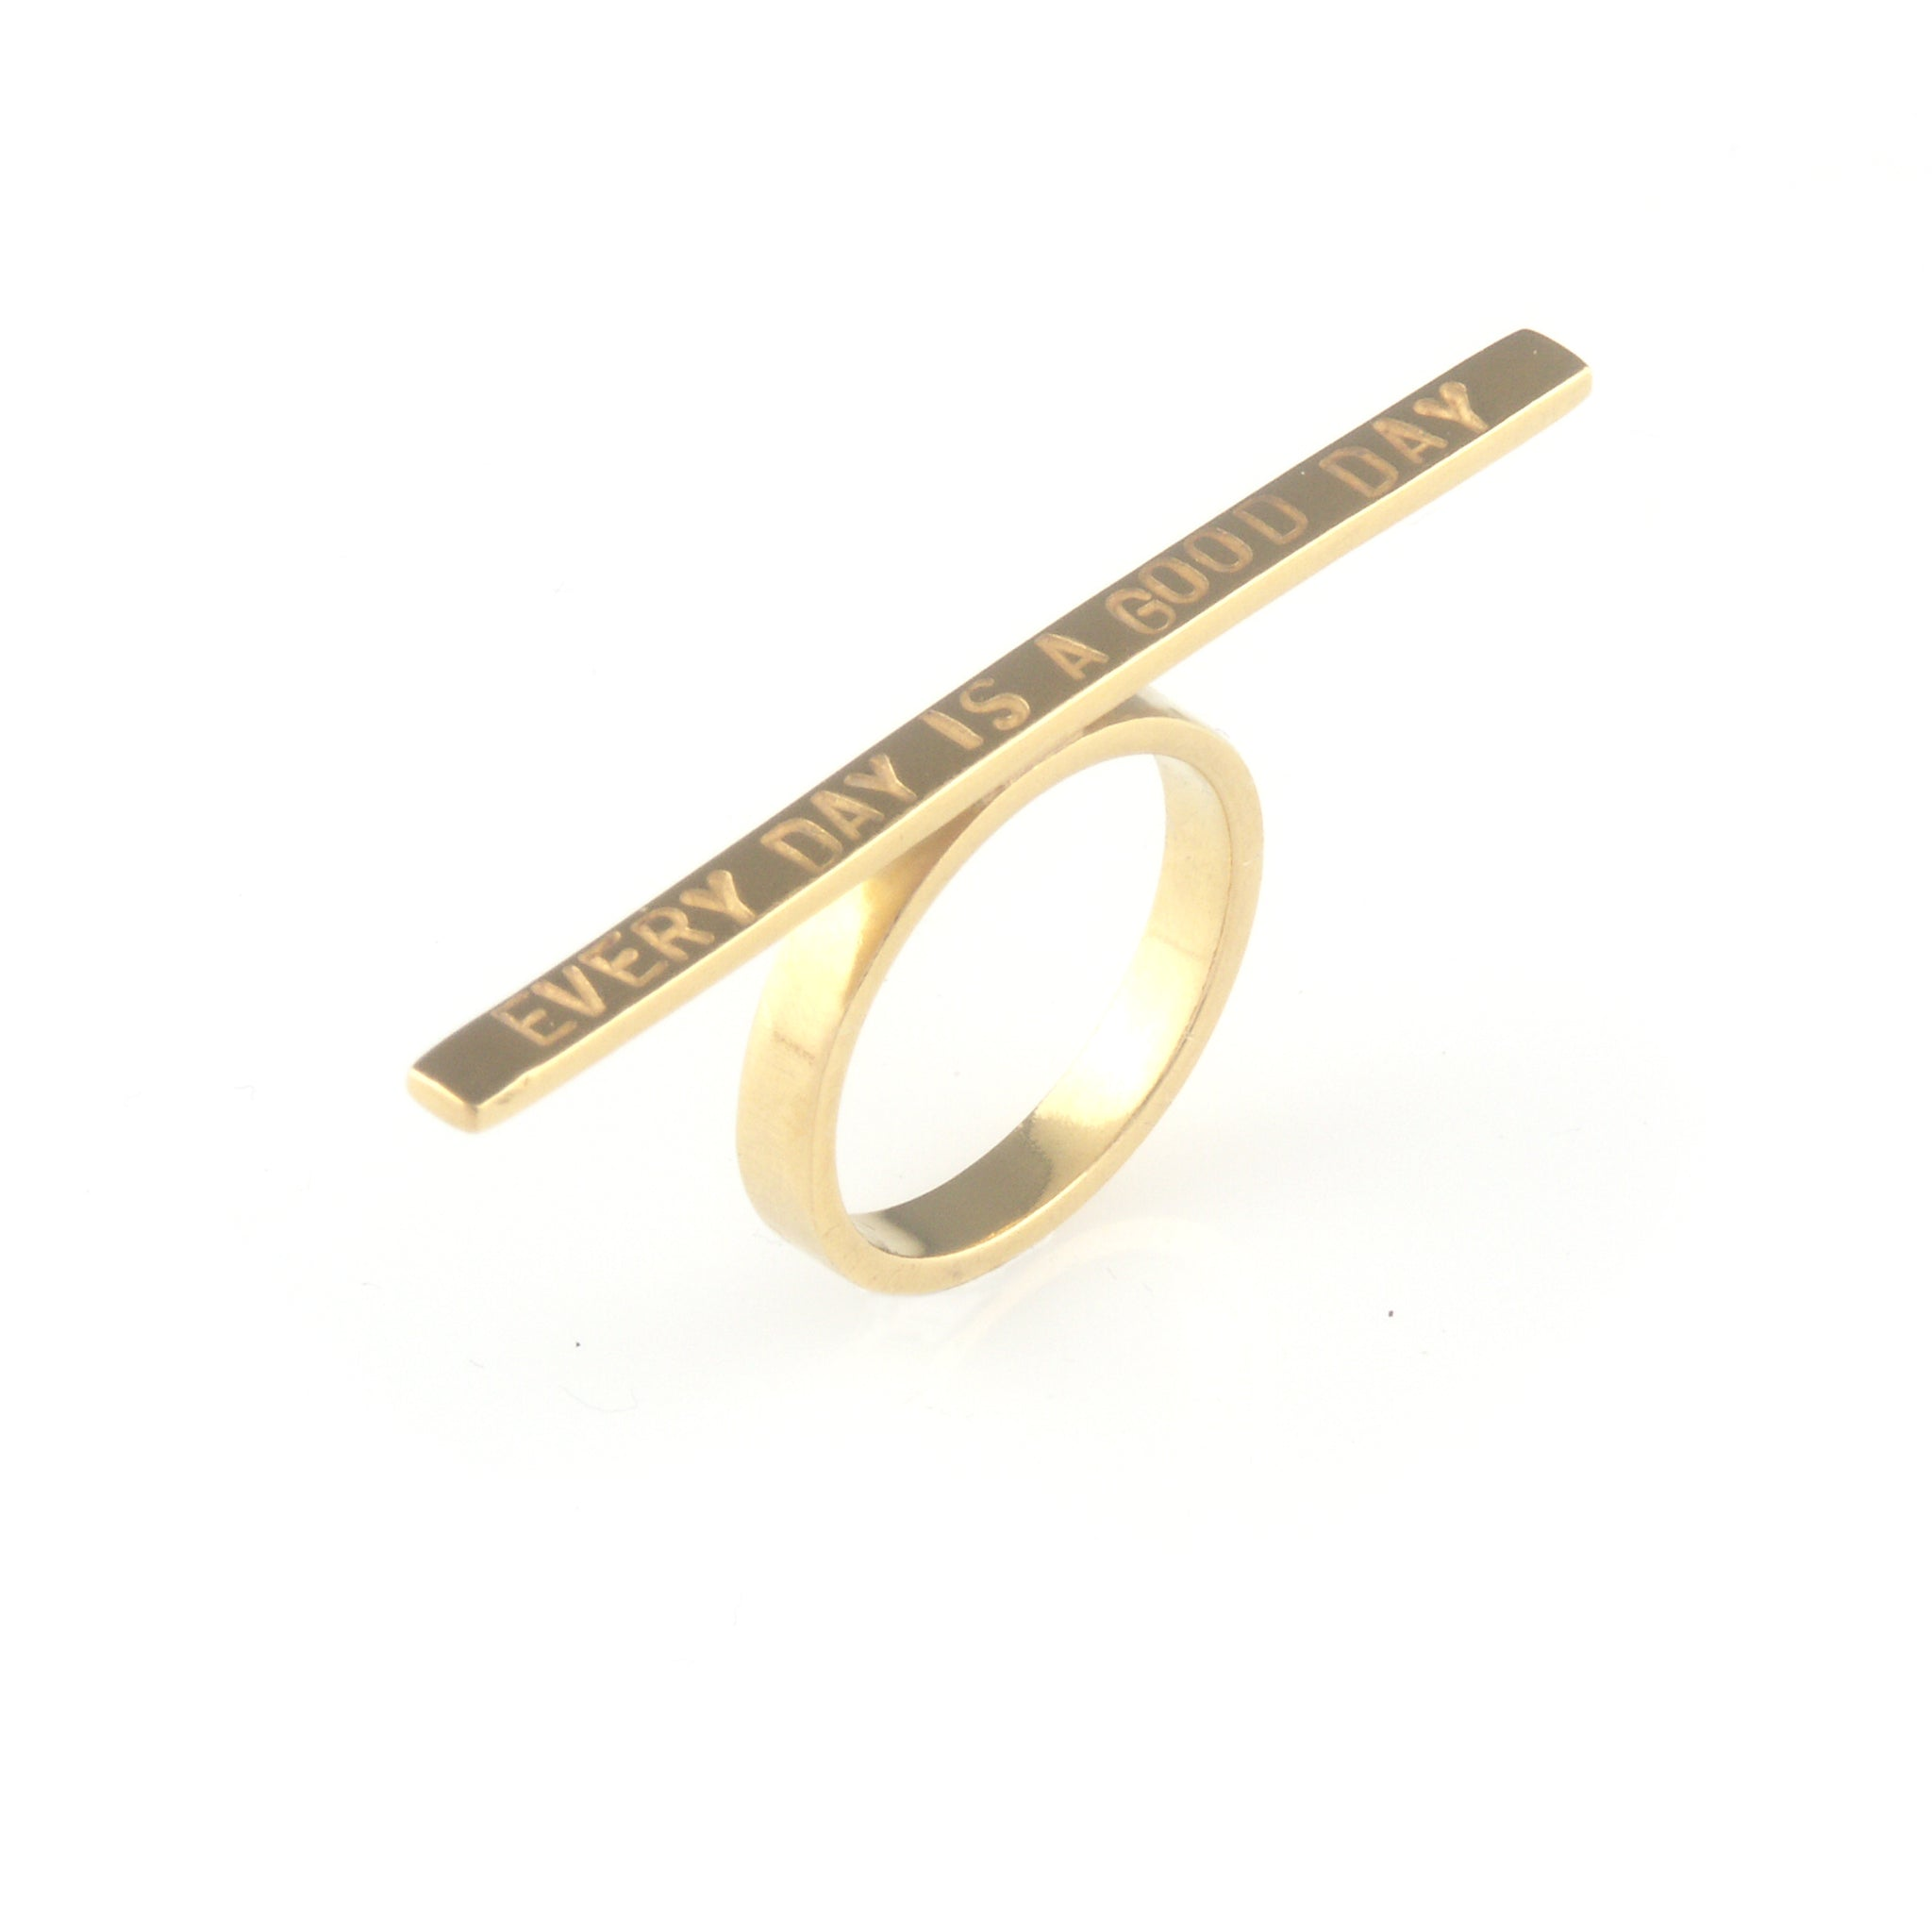 'Every day is a good day' - 3mm silver ring with wording 'every day is a good day'